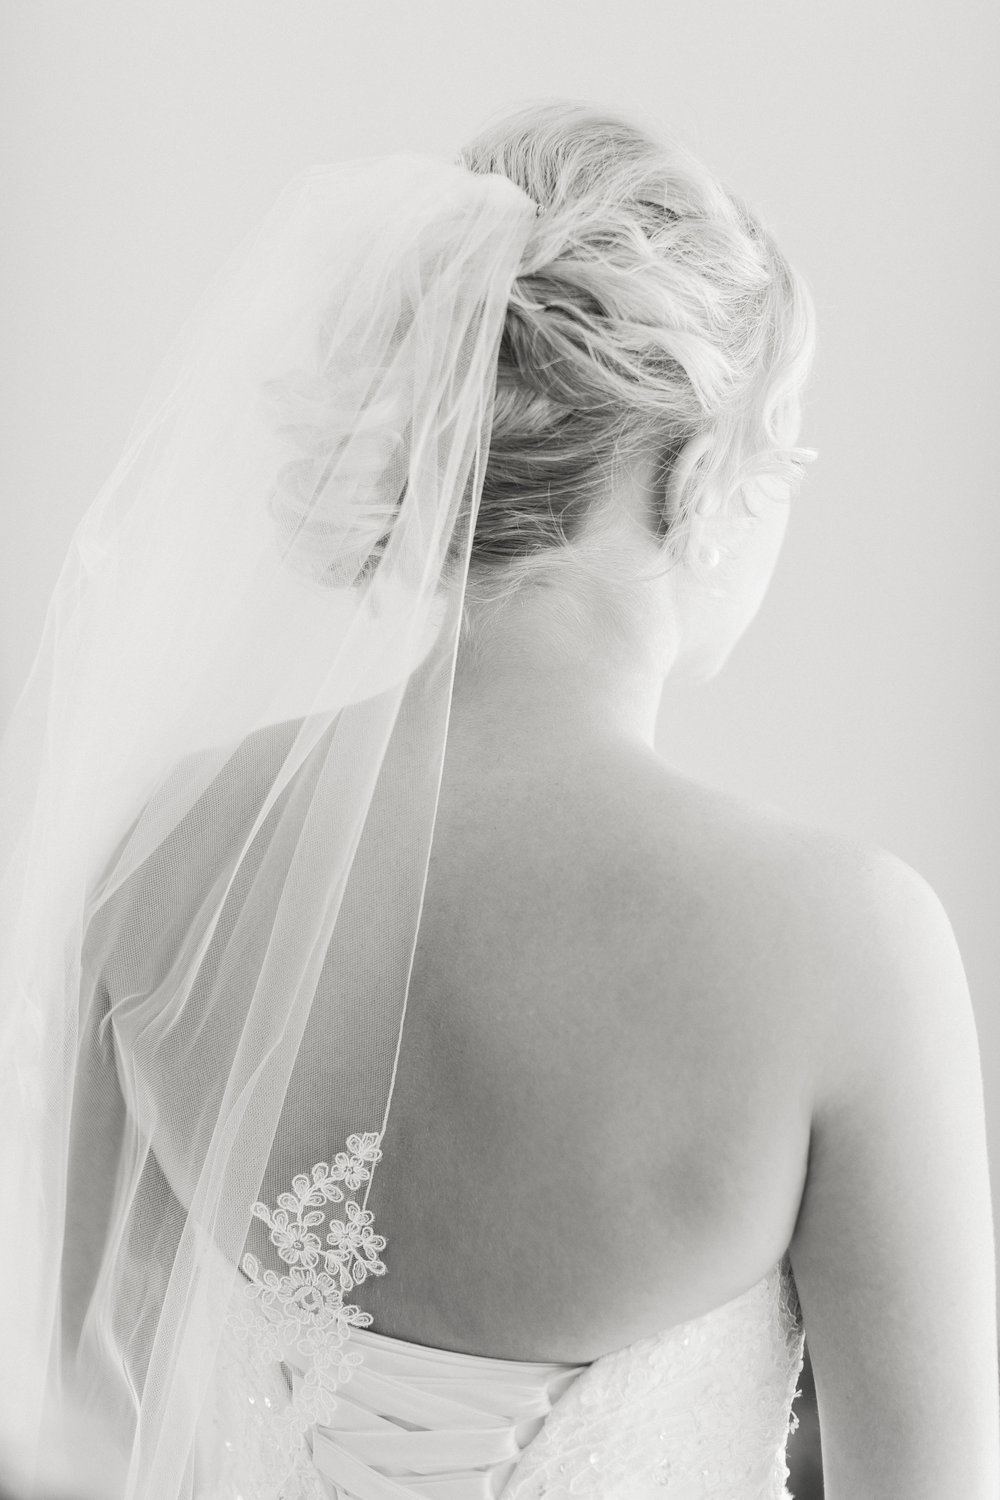 Brandon Sampson Photography. Bridal Veil Portrait. Film Photography.